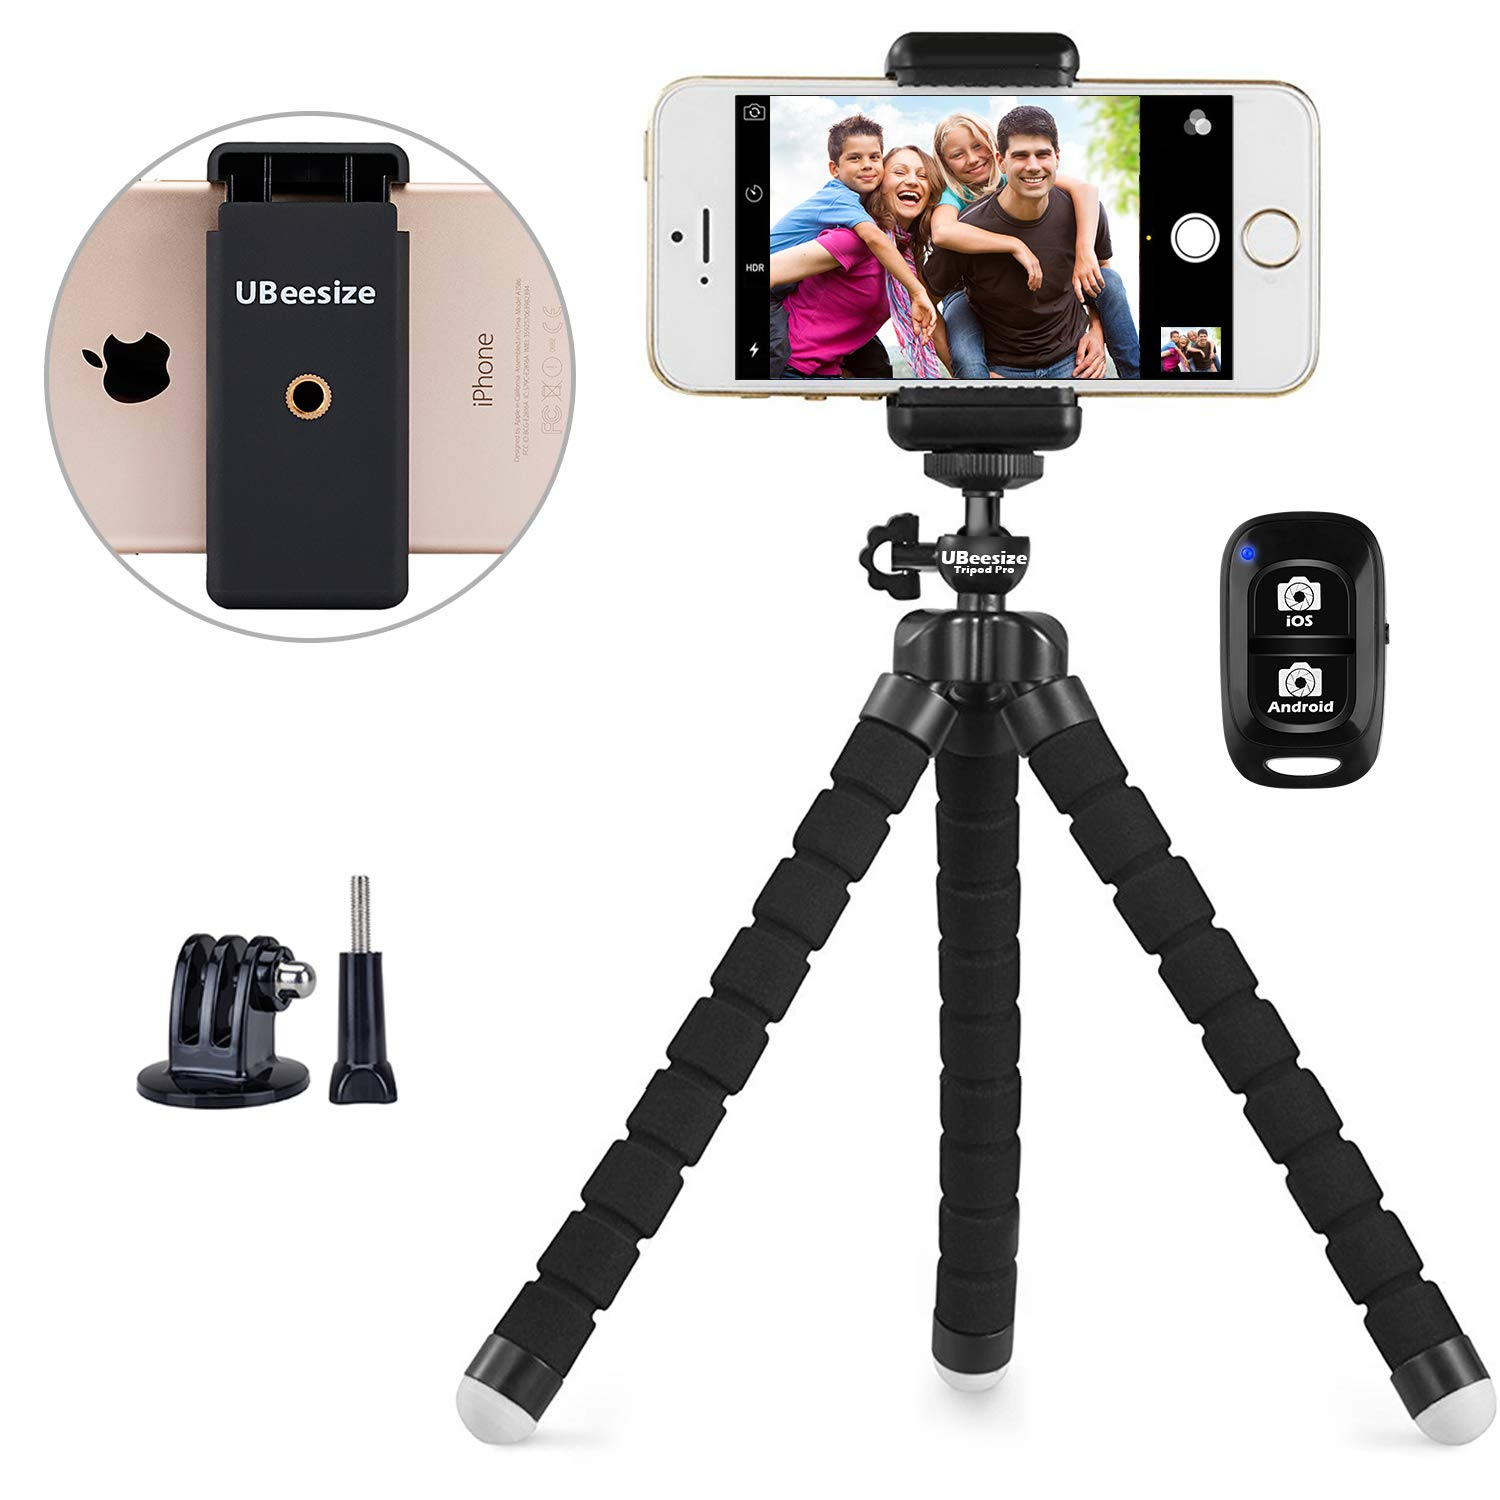 Phone Tripod, UBeesize Portable, and Adjustable Camera Stand Holder with Wireless Remote and Universal Clip, Compatible with iPhone, Android Phone, Camera, Sports Camera GoPro (2018 New Version)